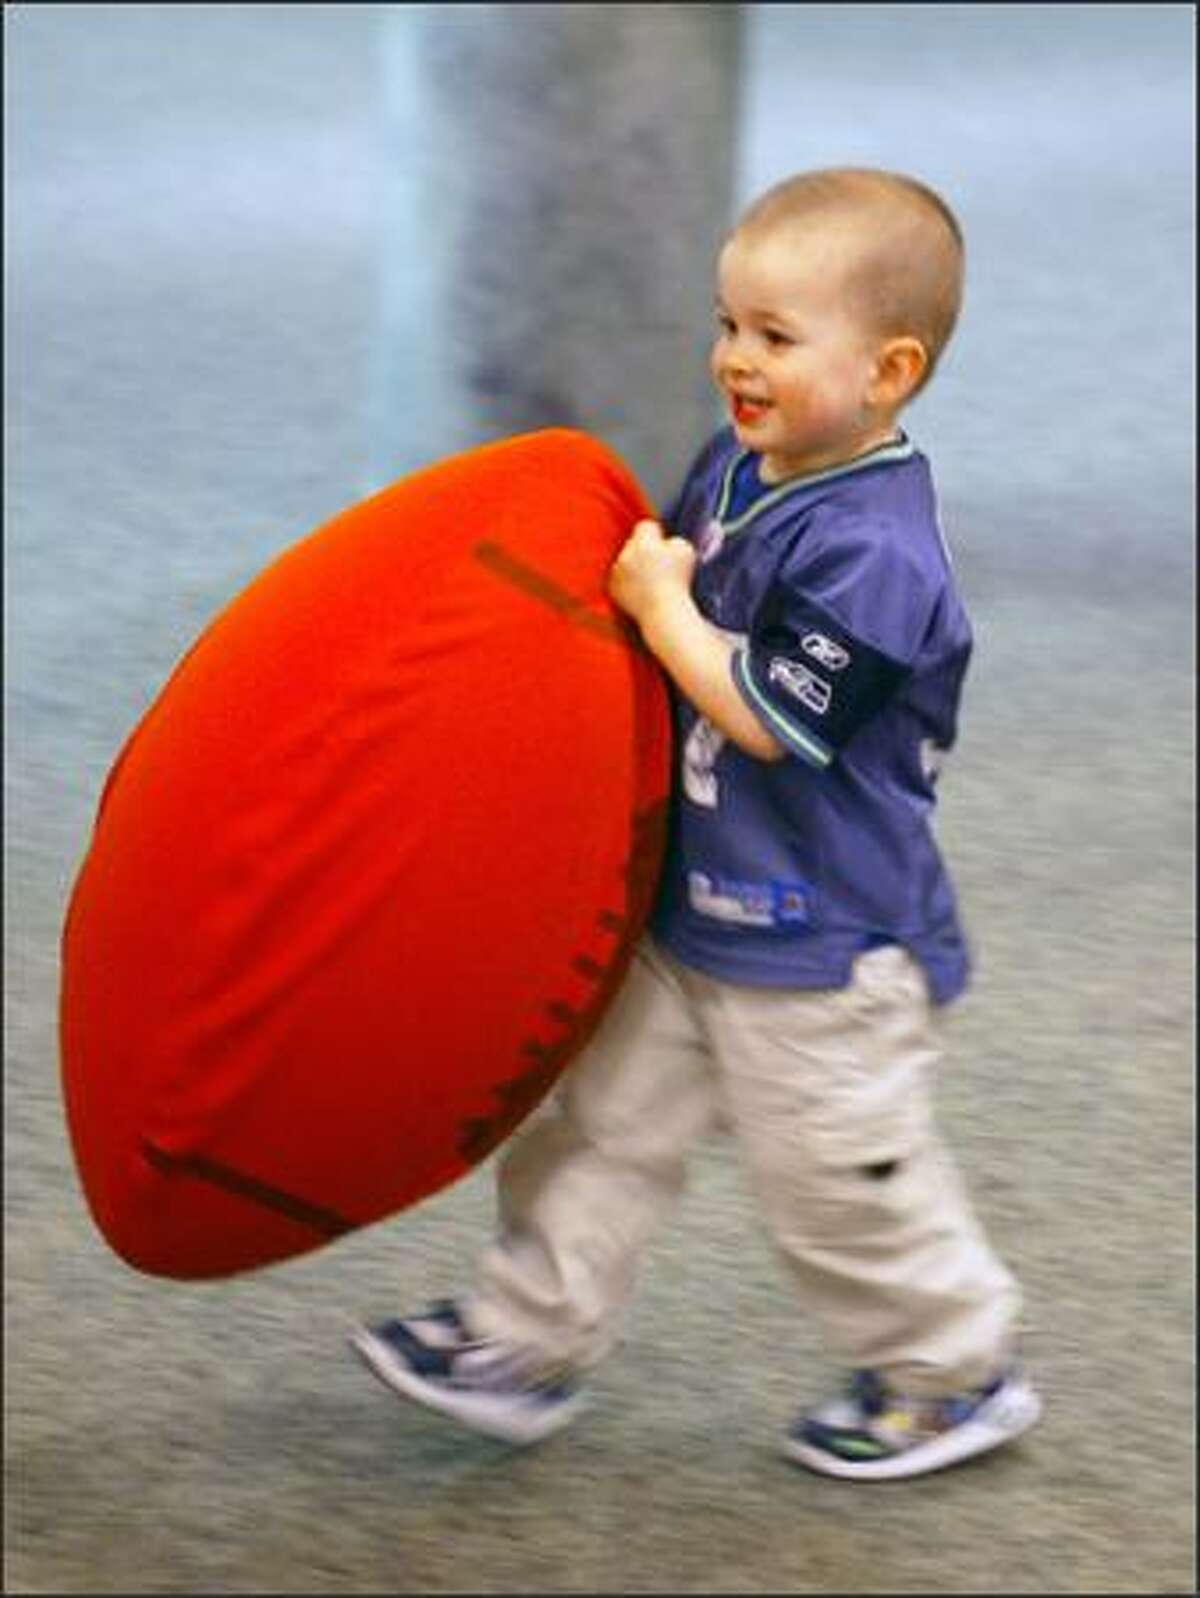 Caleb Nuno, 2, wearing a Shaun Alexander jersey, carries a blow-up football through the Christian Faith Church in SeaTac. The church is attended by Seahawk Shaun Alexander when he is in town.